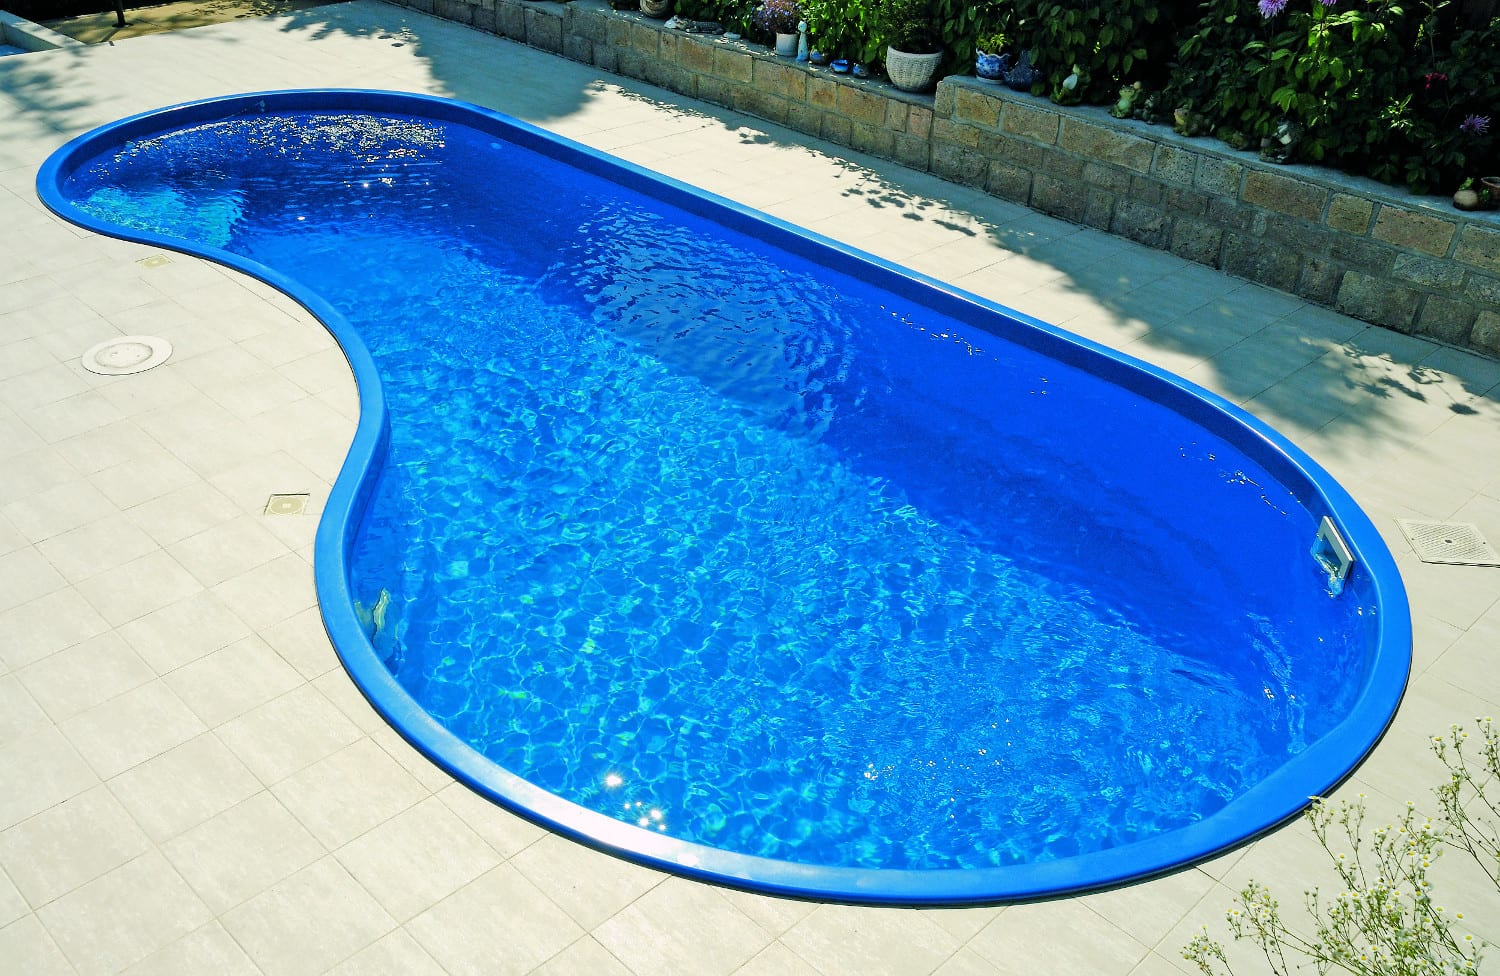 Rhodos 7.50m X 3.50m X 1.40m One Piece Fibreglass Pool *NO LONGER MADE*